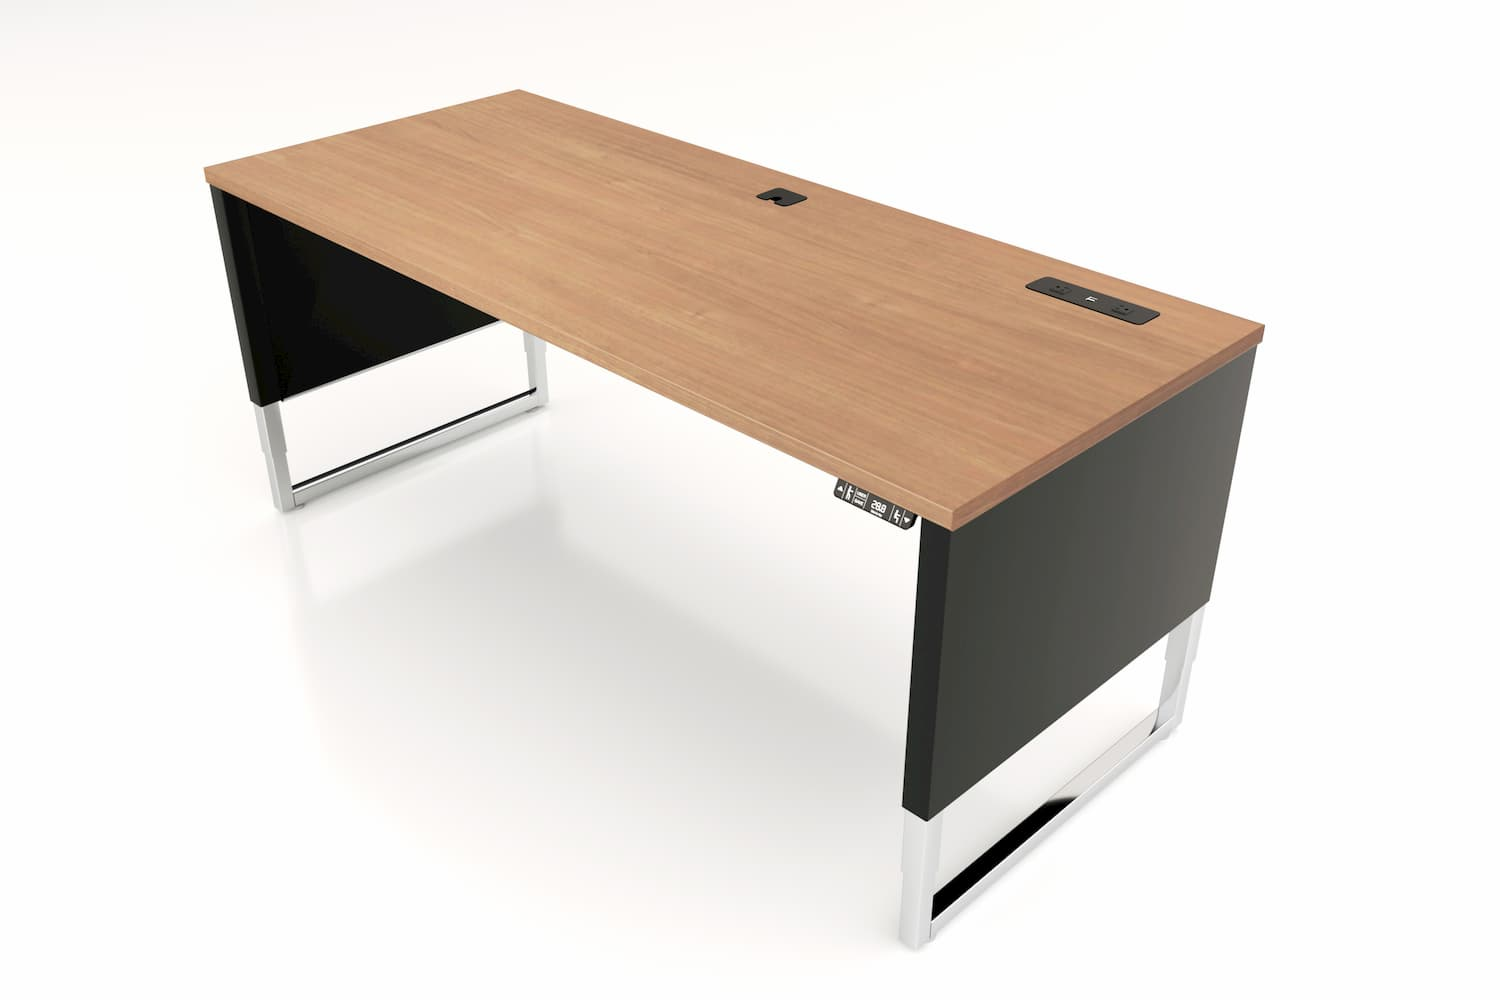 Advent-Desk-ADV-7230-BK-Custom-Top-9